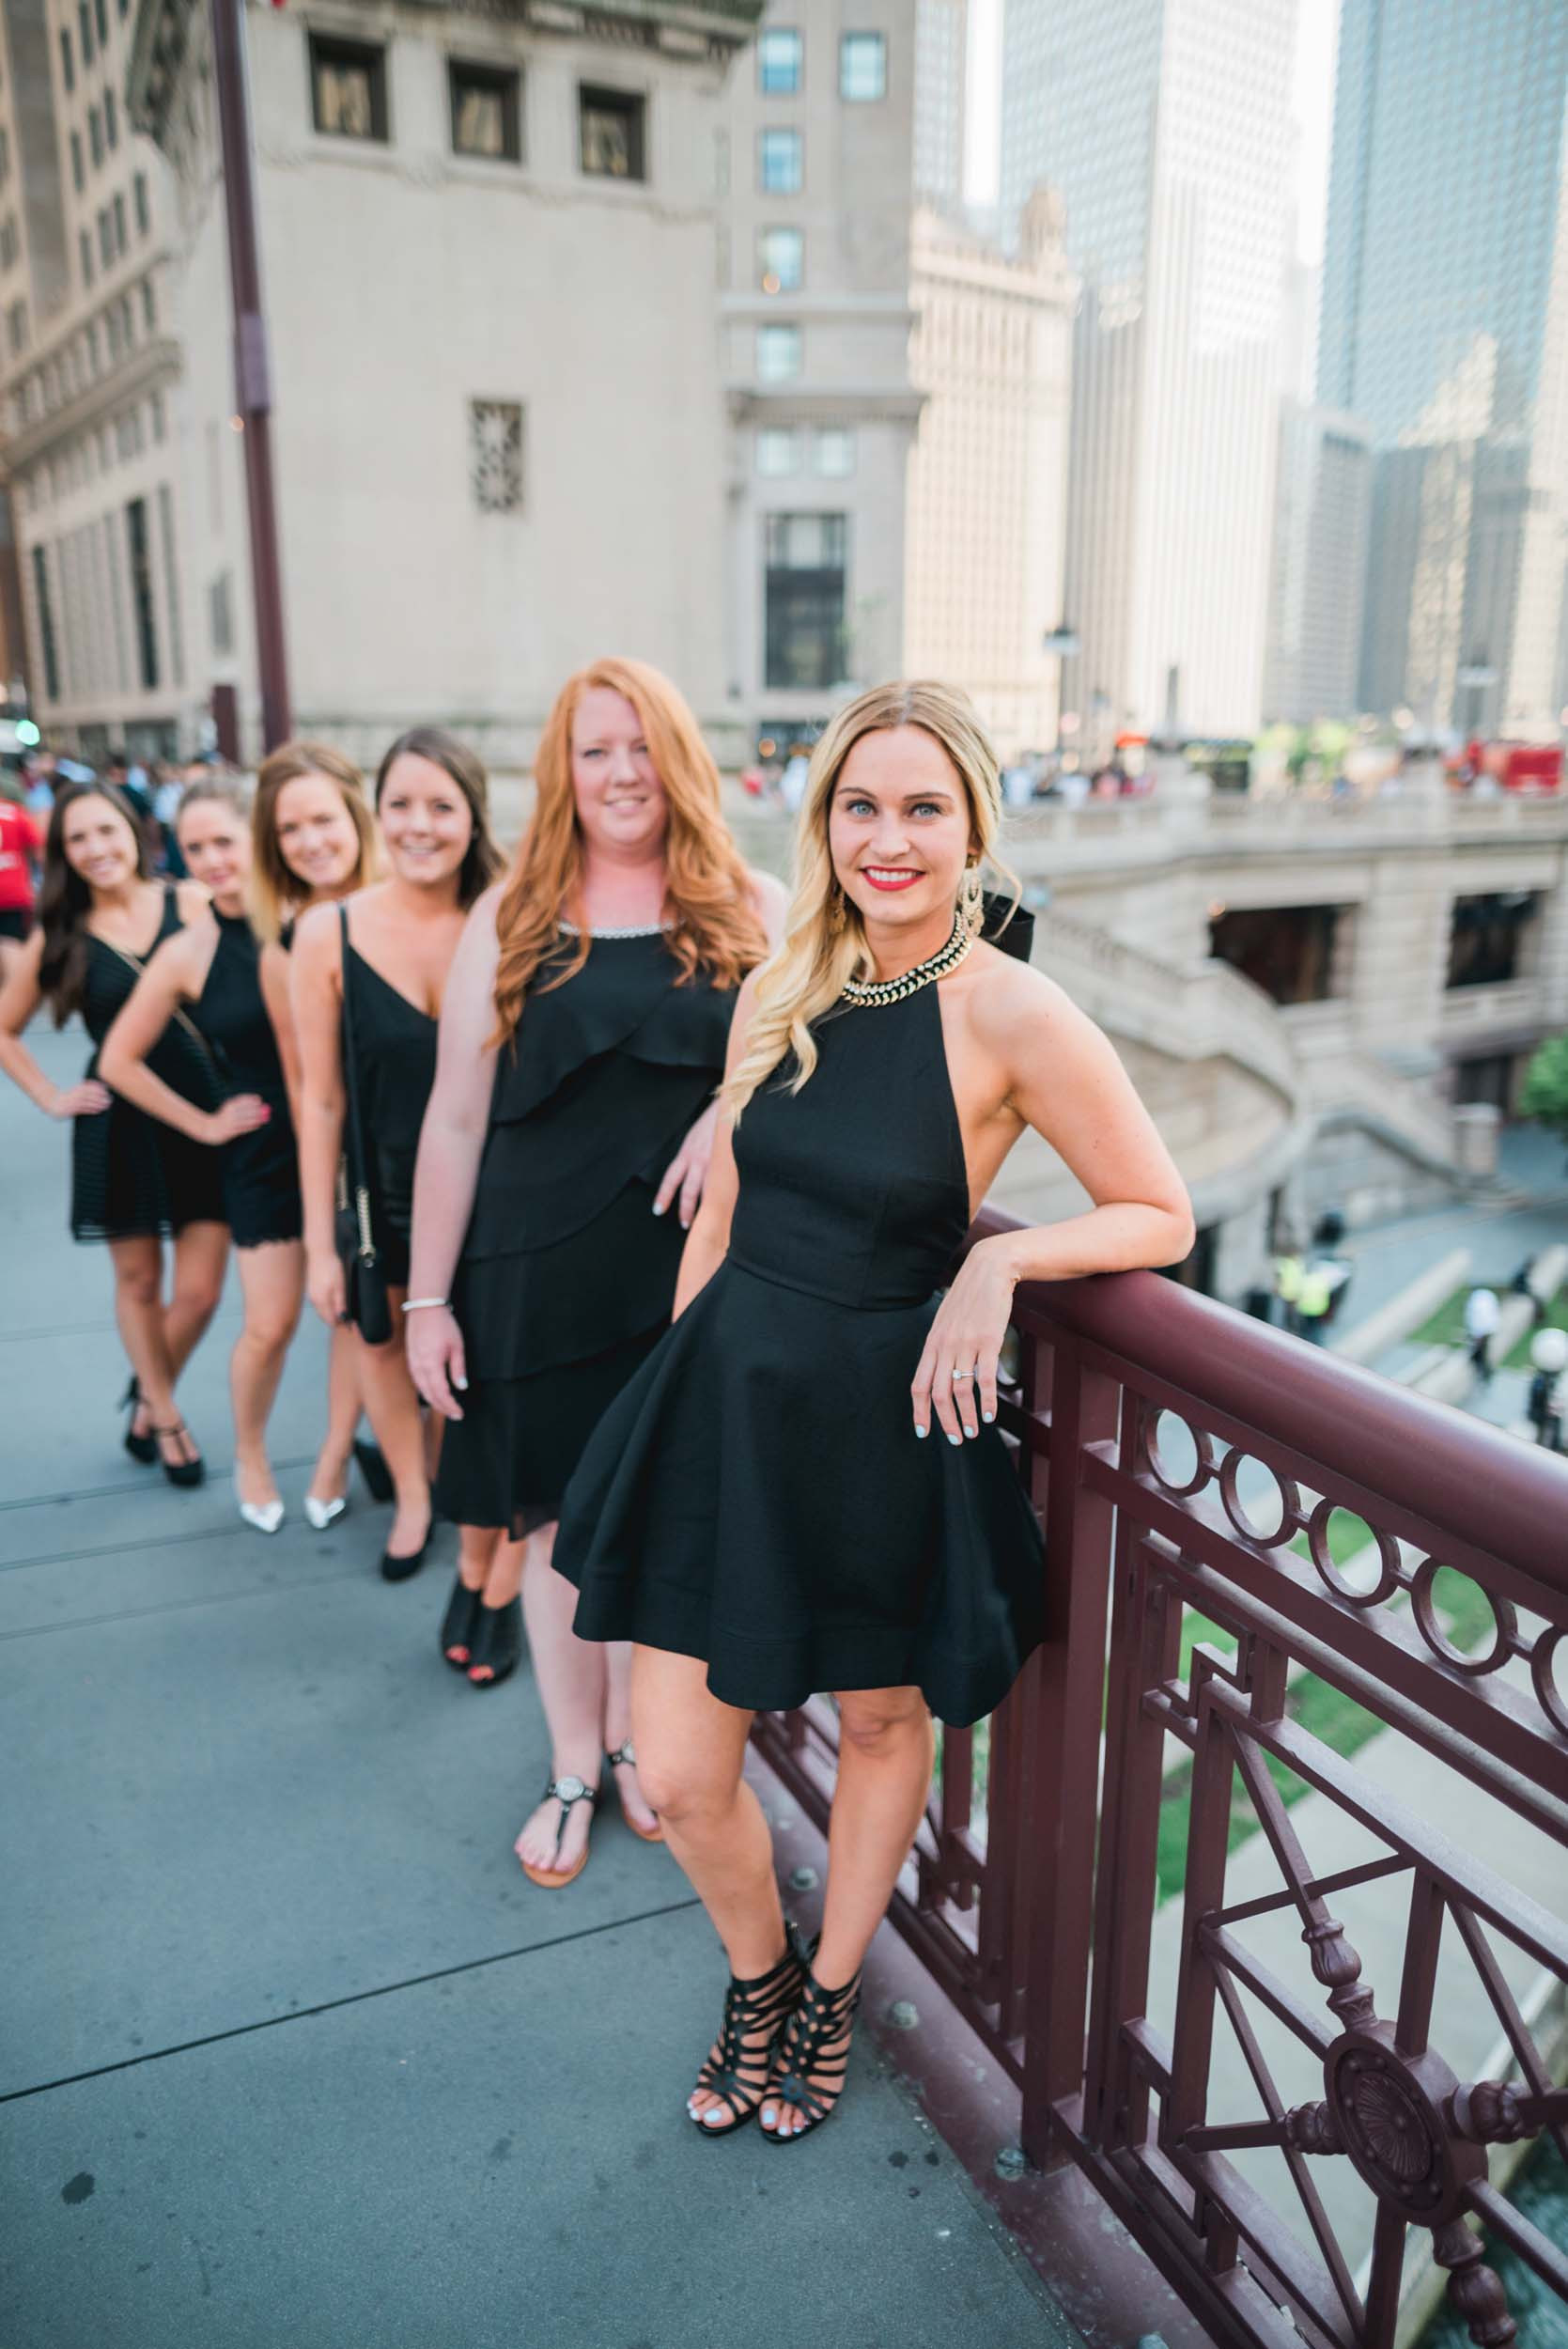 Bachelorette Party Ideas Chicago  Top 10 Unique Ideas For A Chicago Bachelorette Party